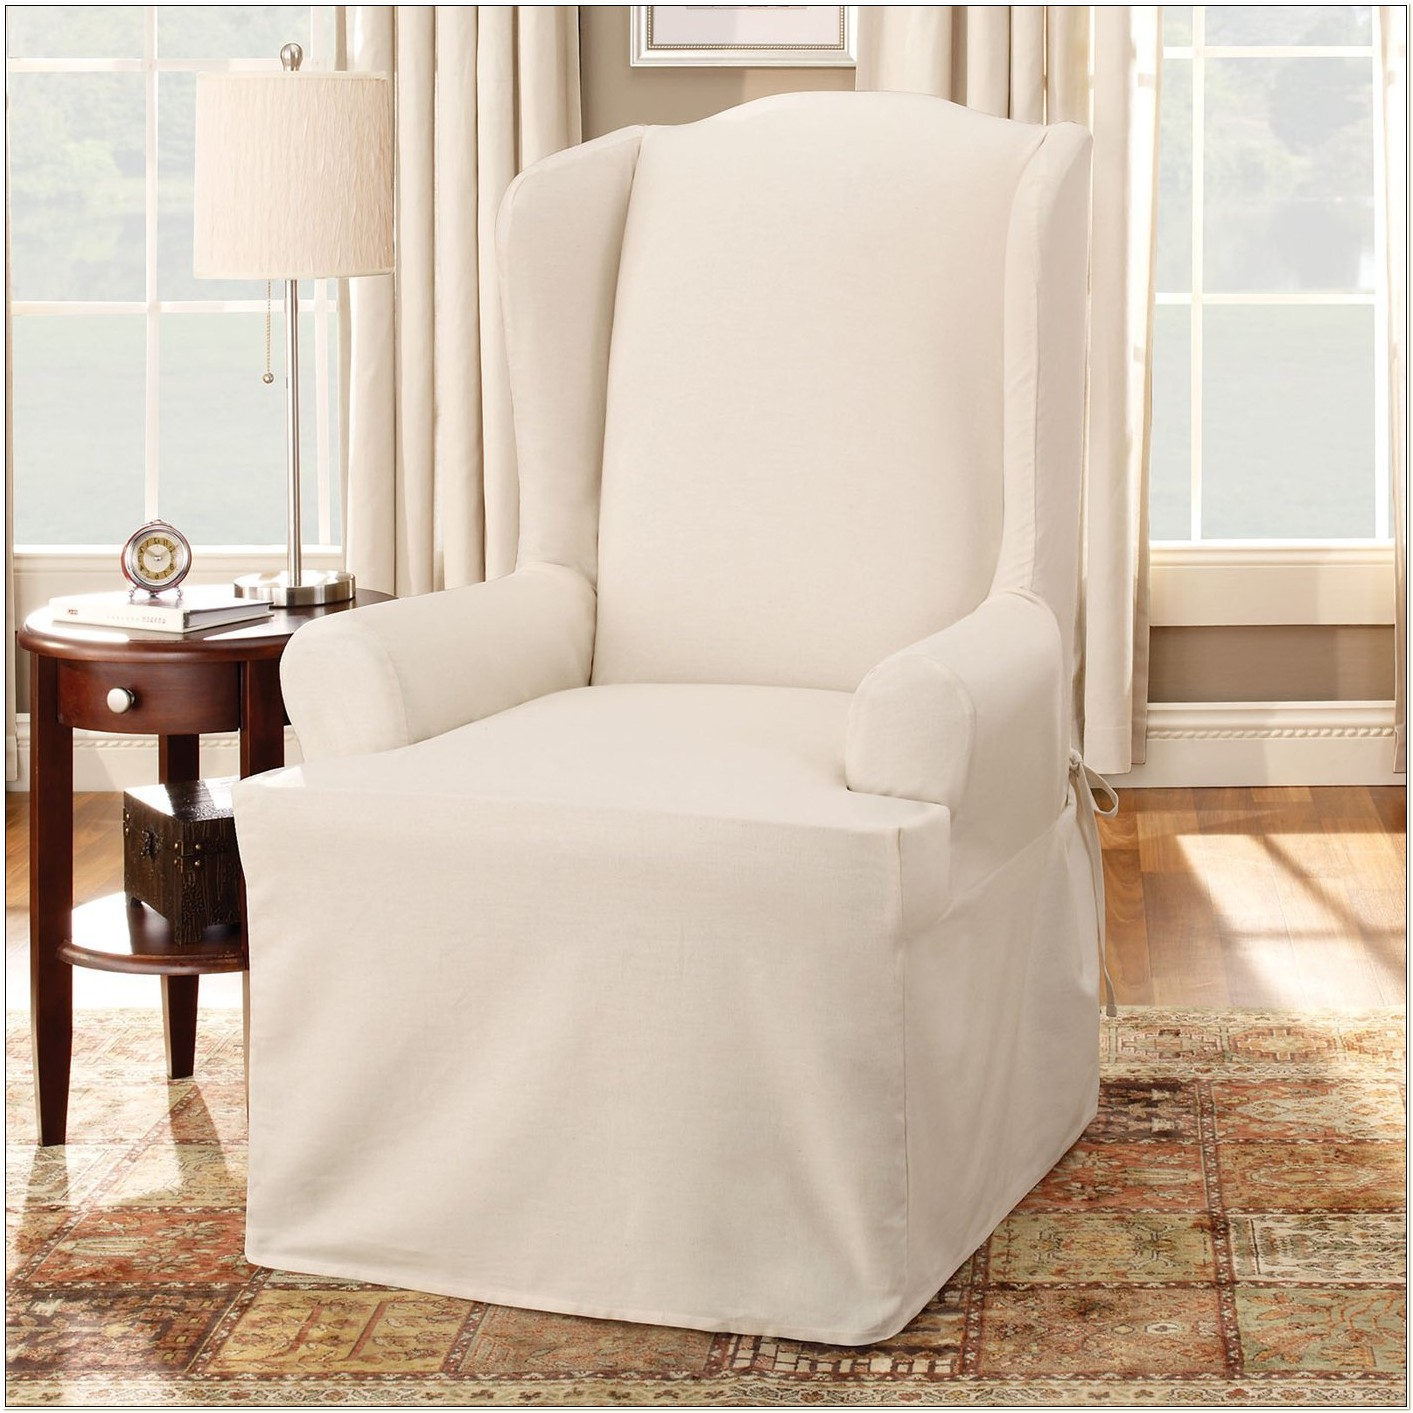 Fitted Slipcovers For Chairs